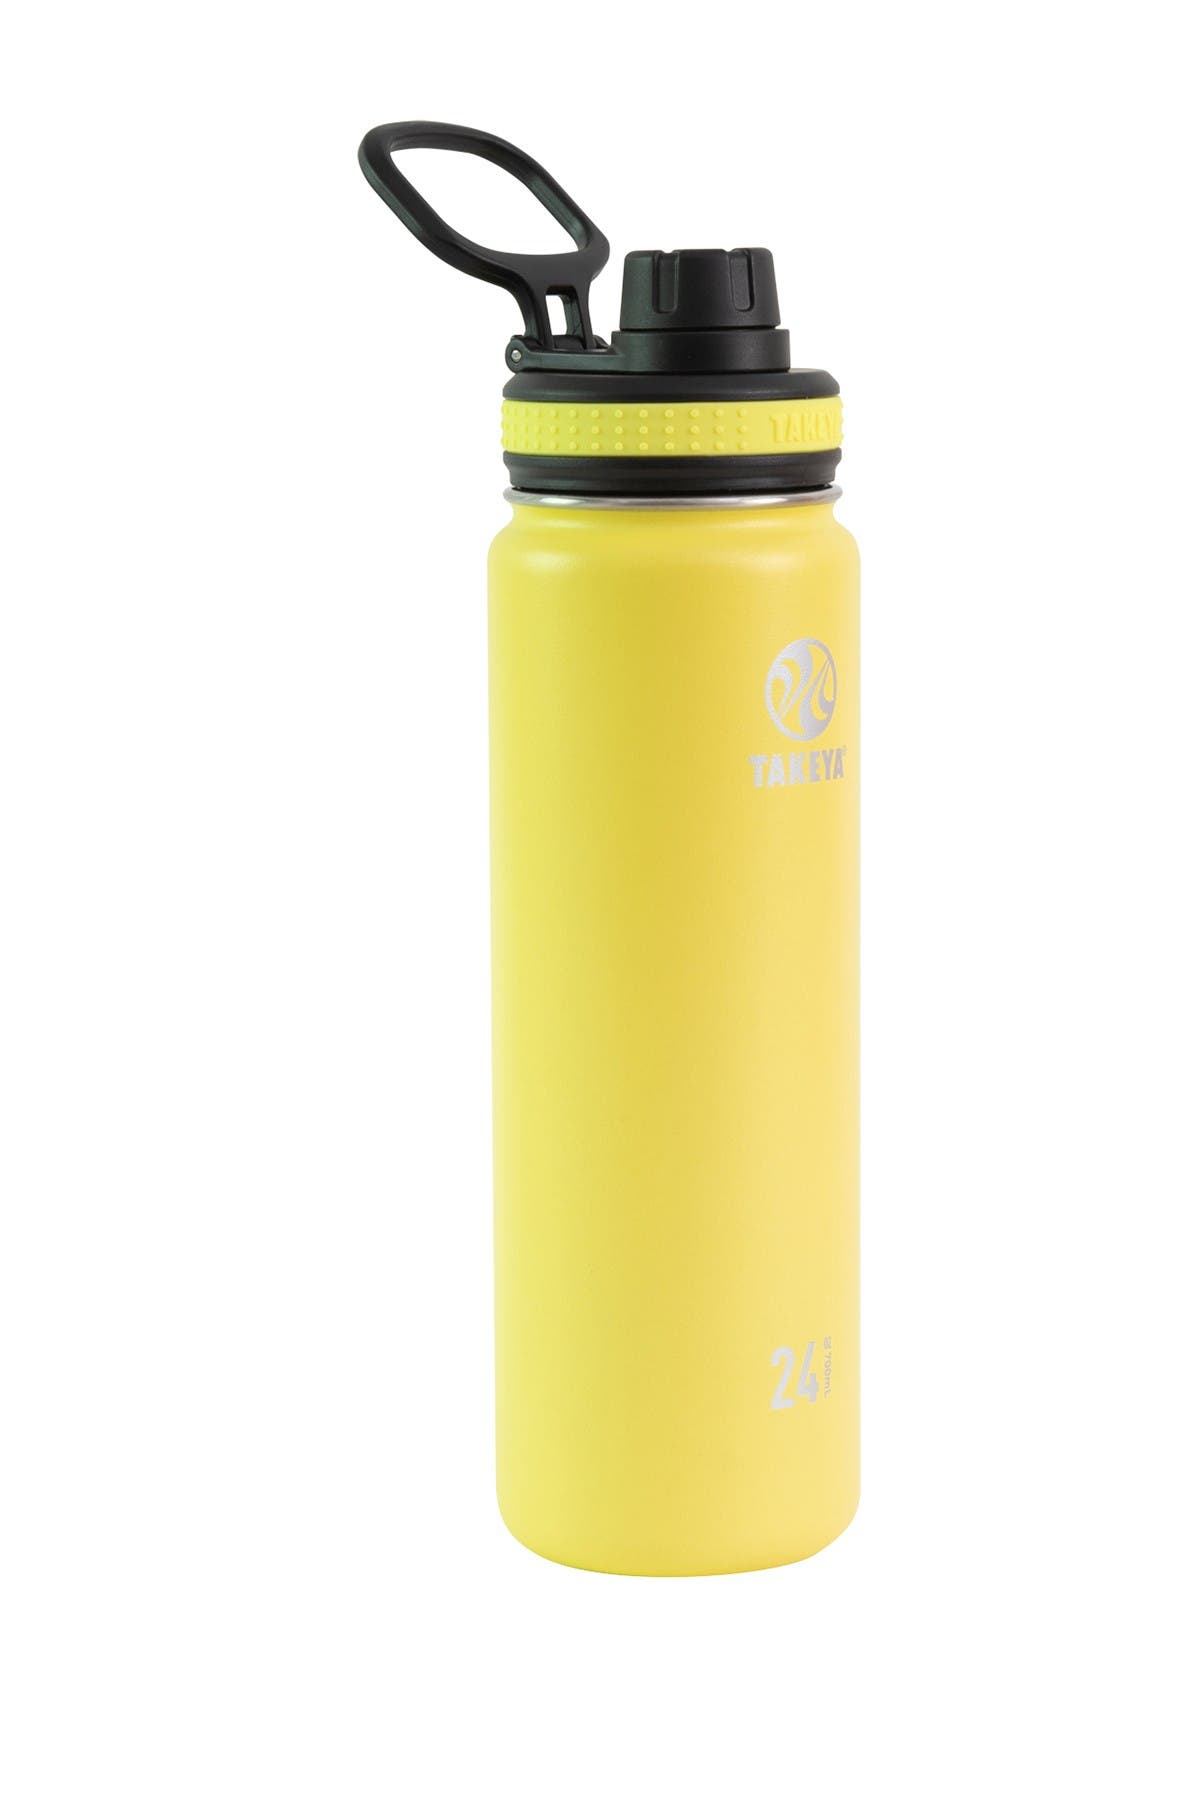 Image of Takeya Canary 24oz. Originals Insulated Stainless Steel Bottle